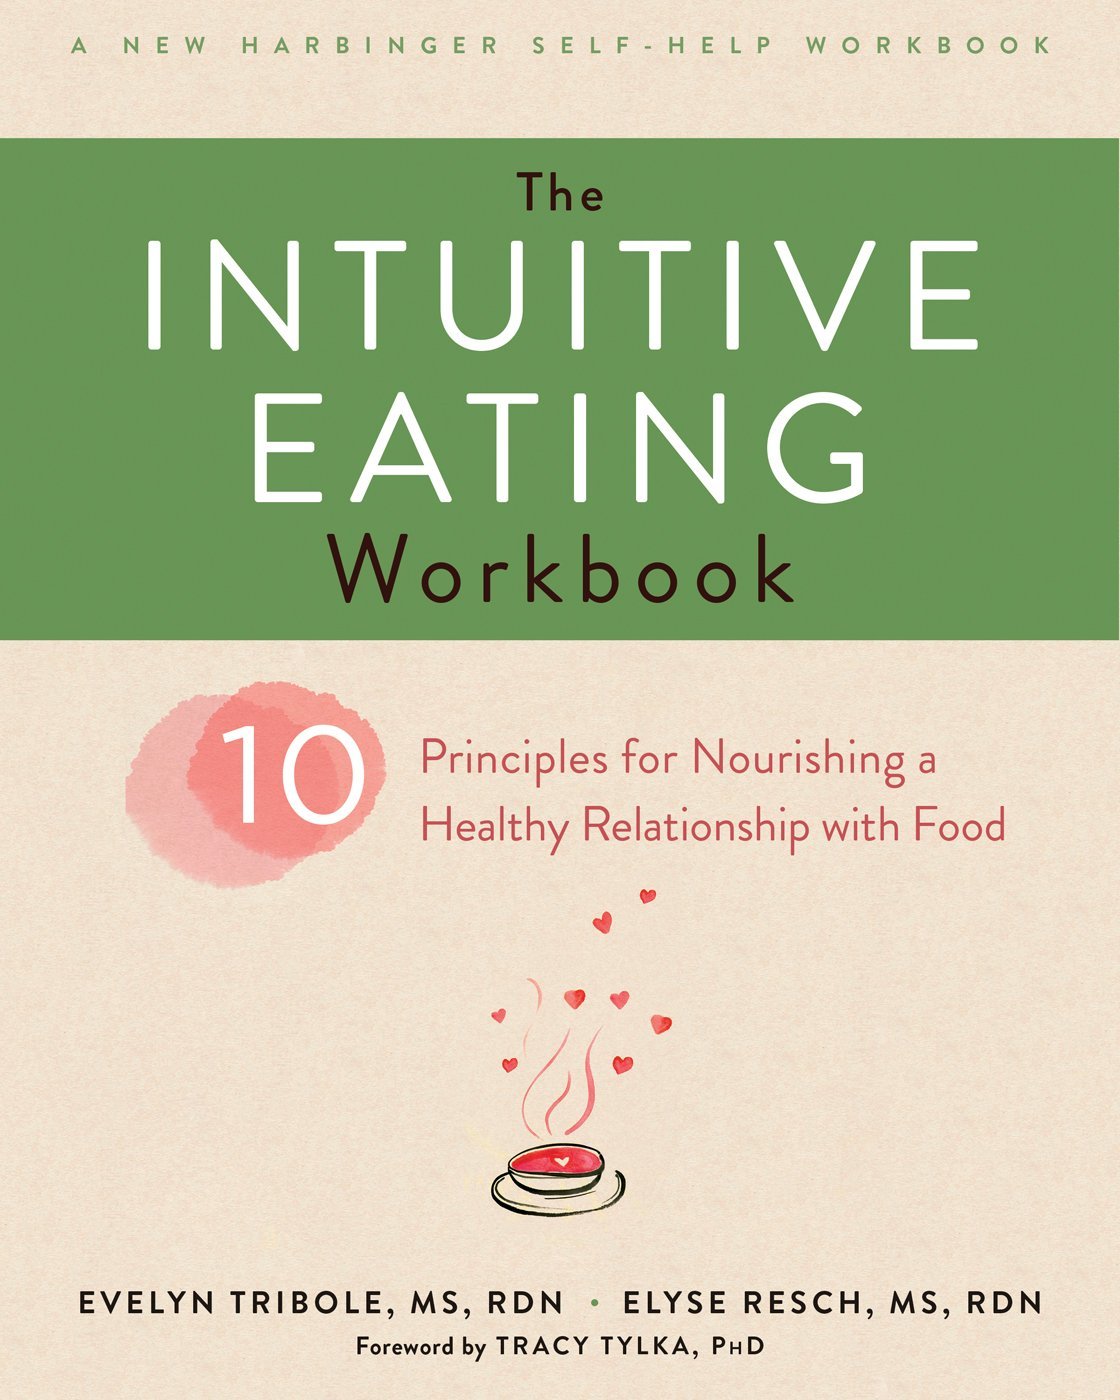 Intuitive Eating Workbook.jpg